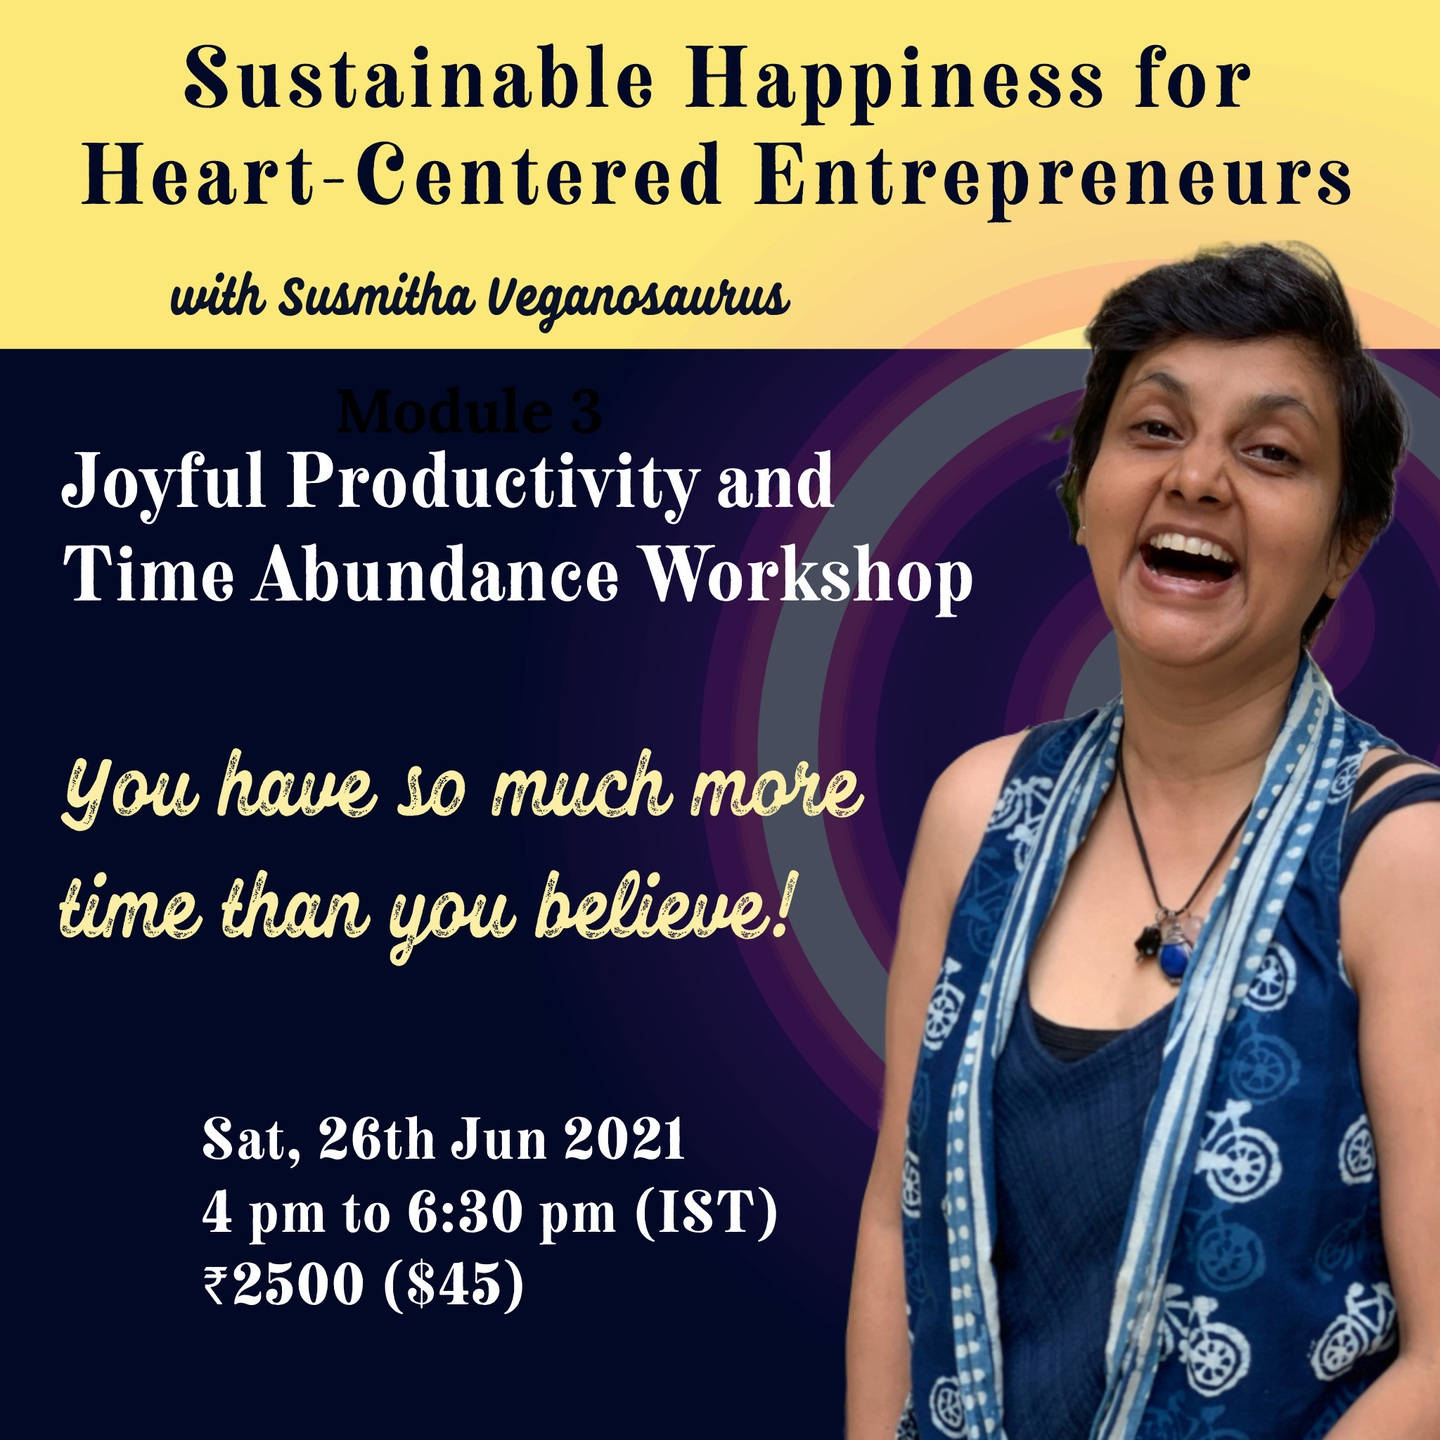 Sustainable Happiness for Heart-Centered Entrepreneurs with Susmitha Veganosaurus. Joyful Productivity and Time Abundance Workshop. You have so much more time than you believe! Sat, 26th Jun 2021, 4 pm to 6:30 pm (IST), Indian Rupees 2500 (US Dollars 45). Right: Susmitha, Short haired Indian lady in a blue sleeveless top. Wearing gemstone pendants on a black thread. Laughing at the camera with eyebrows raised.